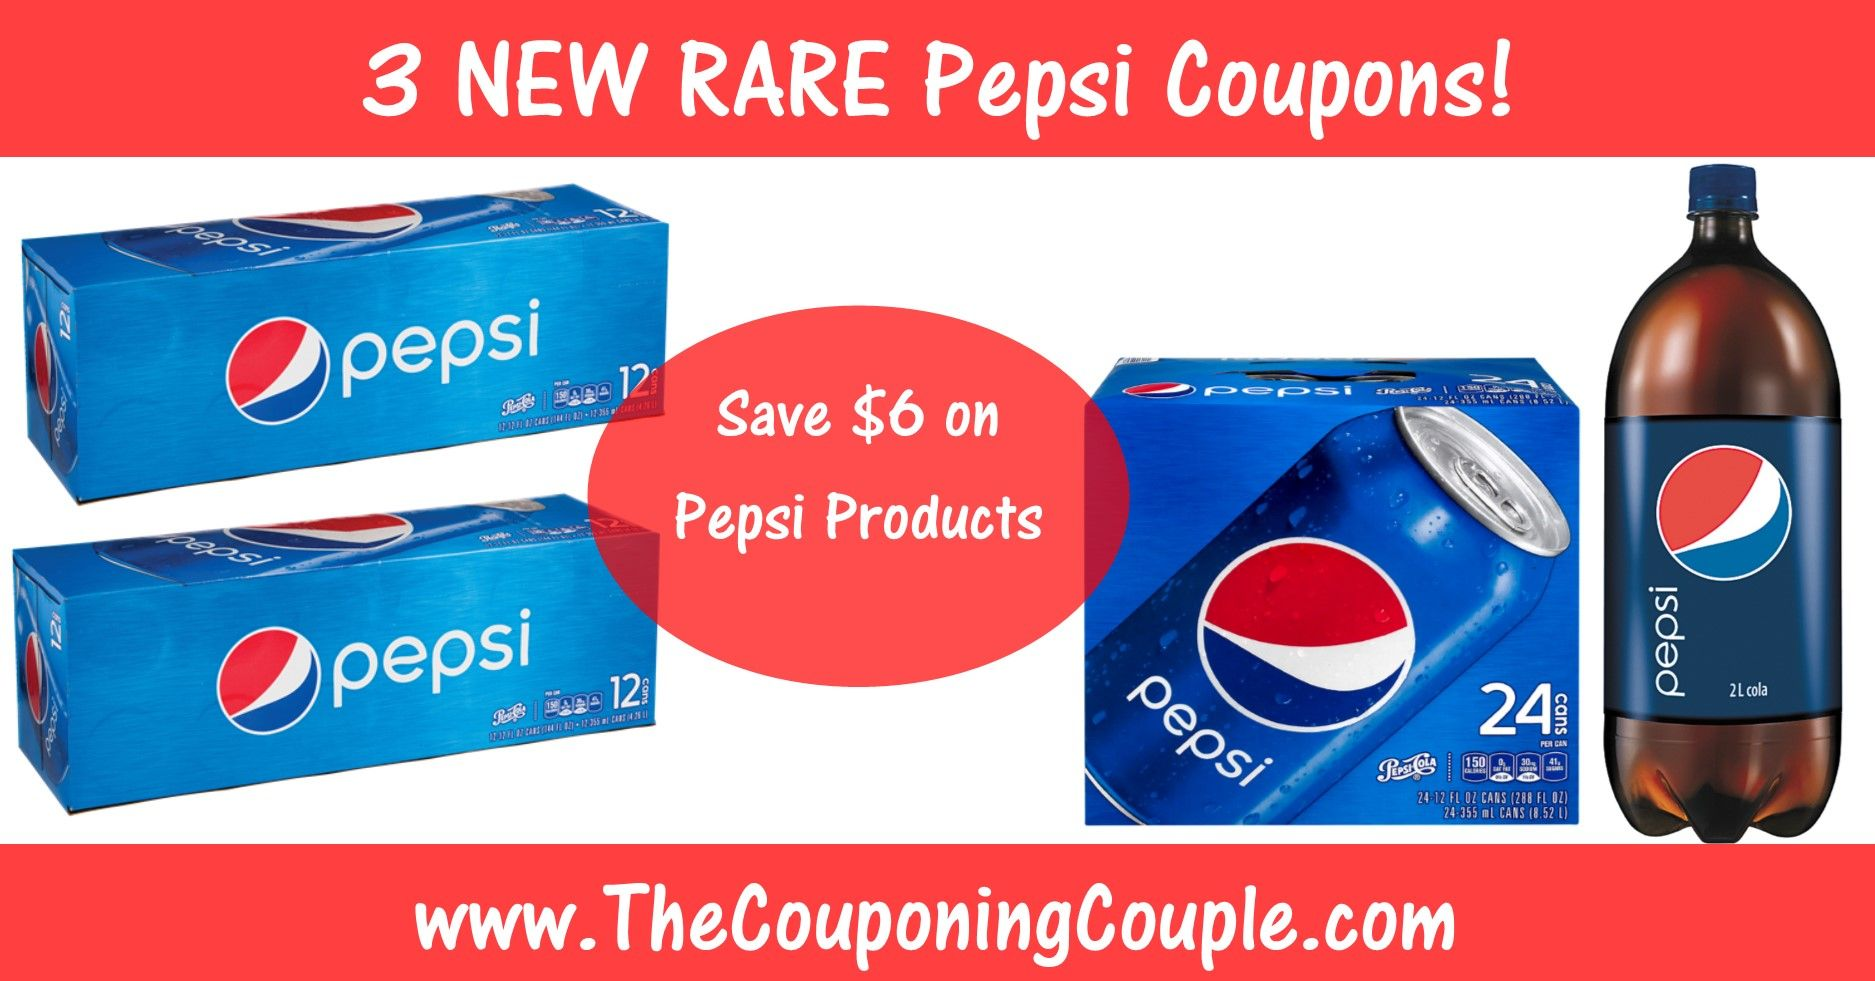 image relating to Pepsi Printable Coupons named Clean** Unusual Pepsi Printable Coupon ~ PRINT At present! Retailer Commercials